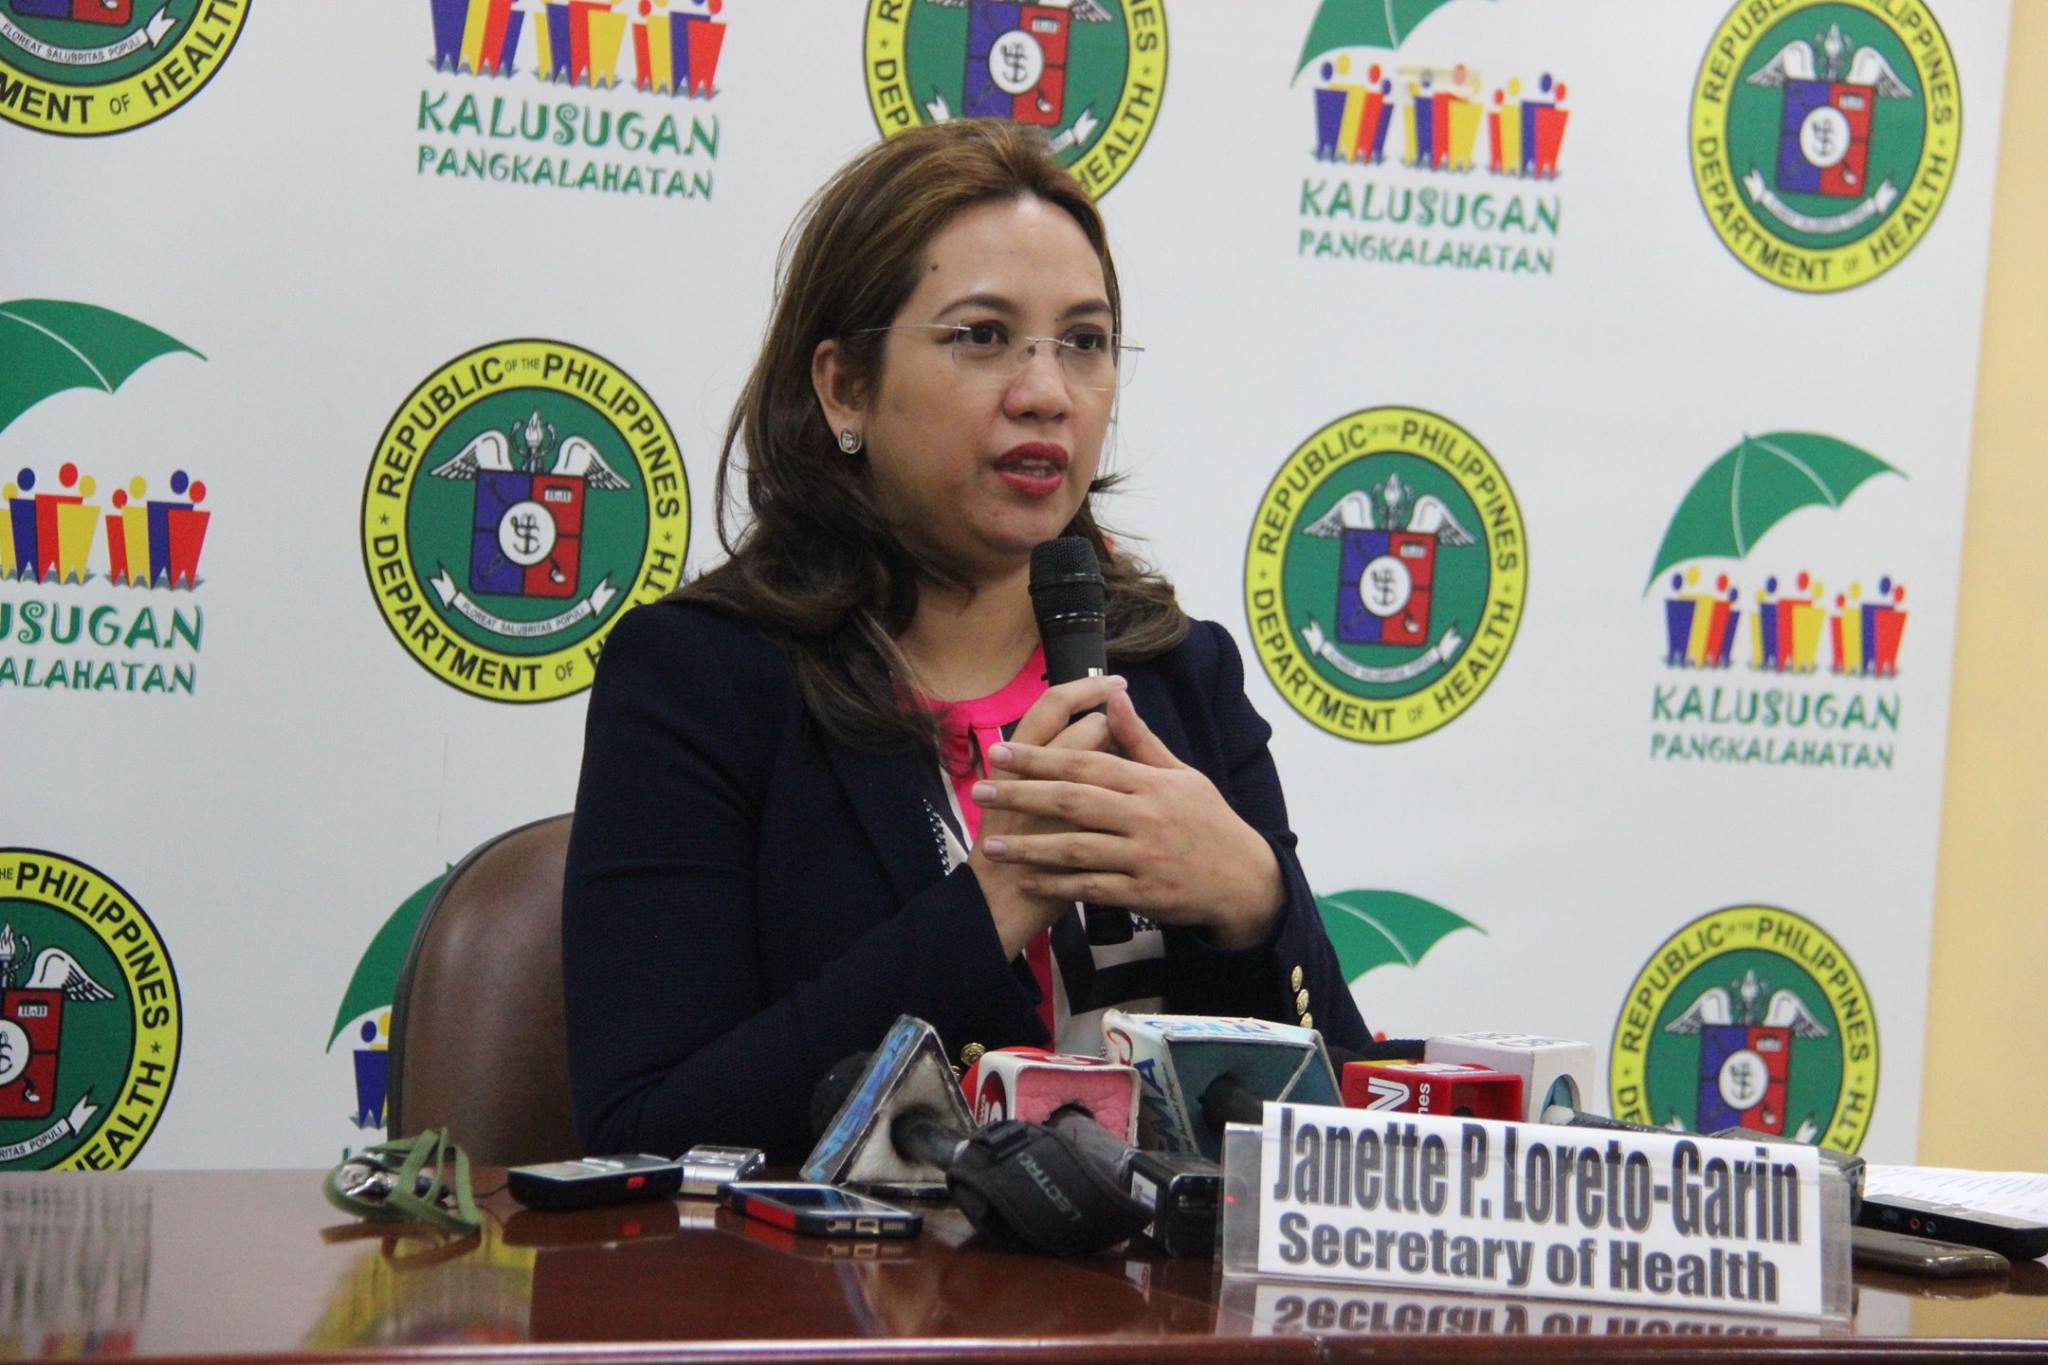 """Studies have shown that most young people who smoke regularly continue to smoke throughout adulthood and fall prey to being 'replacement smokers' of the tobacco industry,"" said DOH Secretary Janette L. Garin. (Photo: DOH's official Facebook page)"